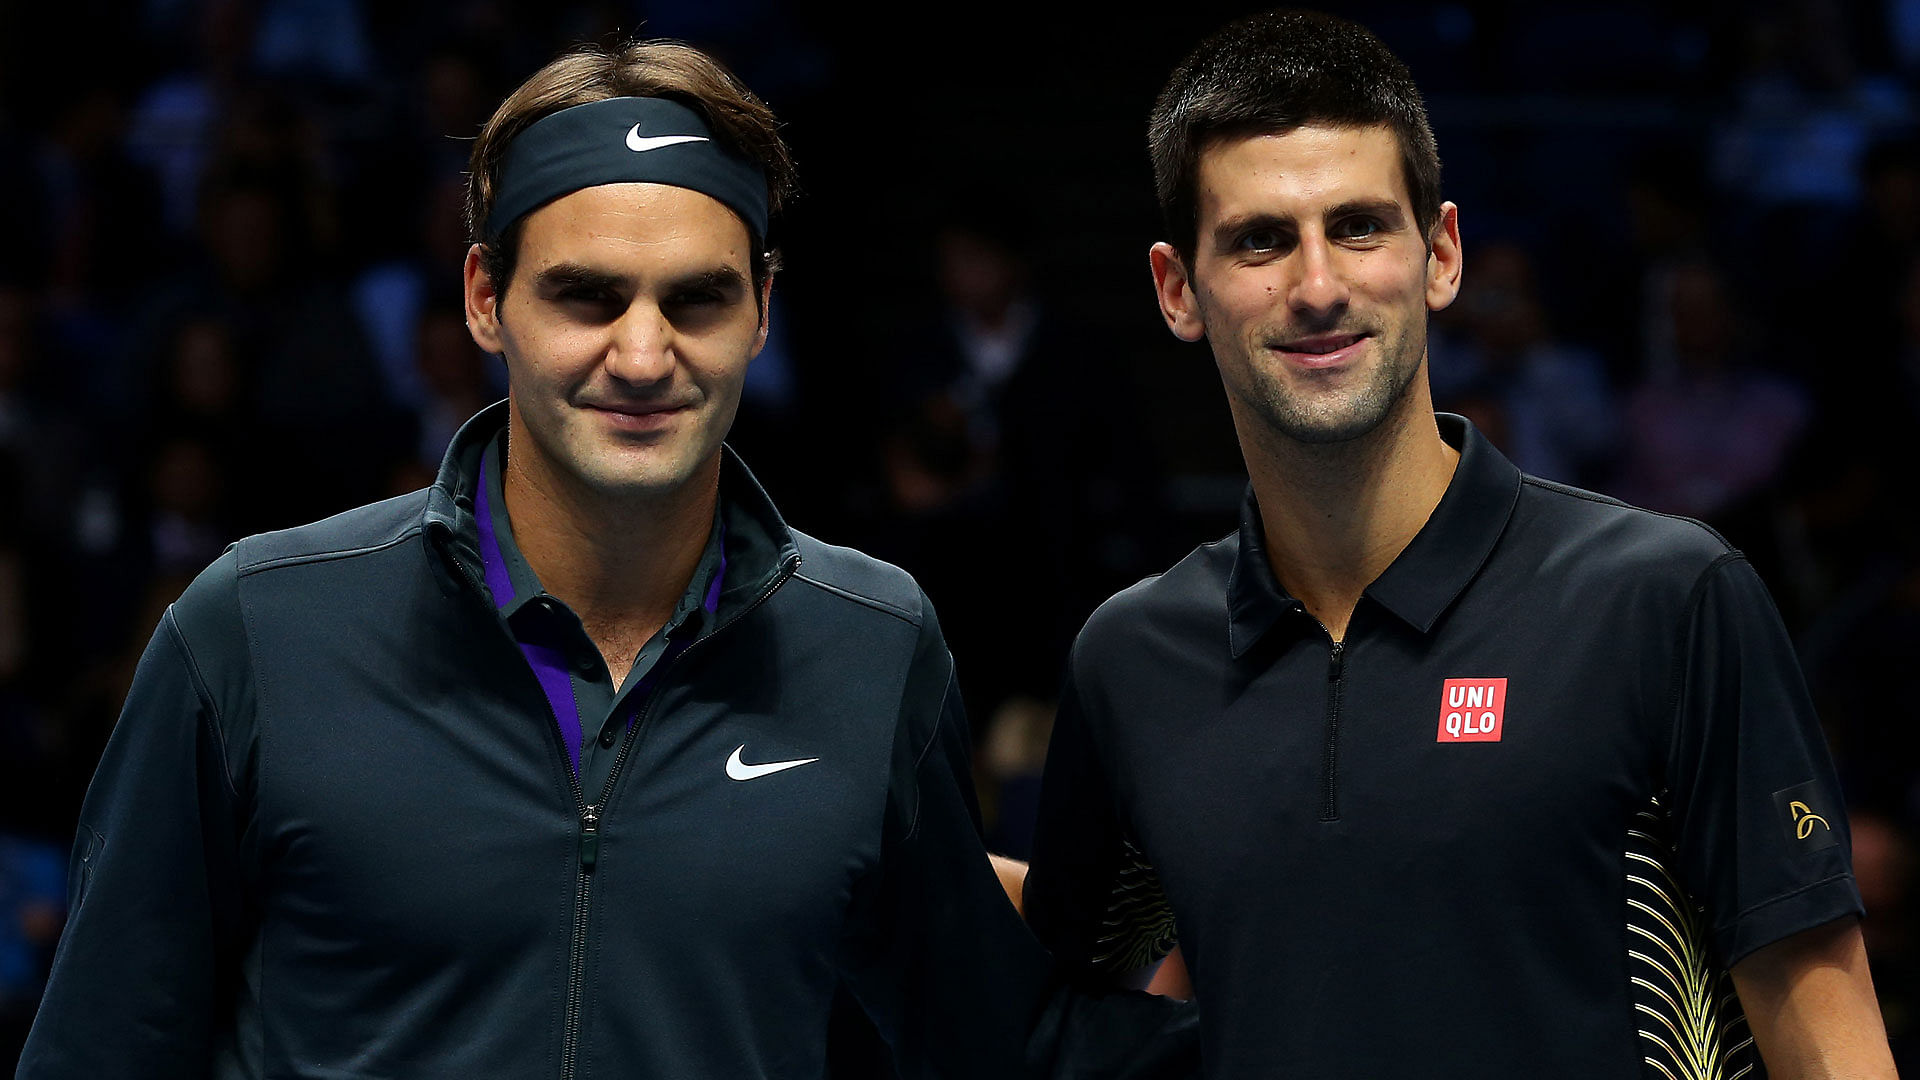 Most epic Federer-Djokovic matches